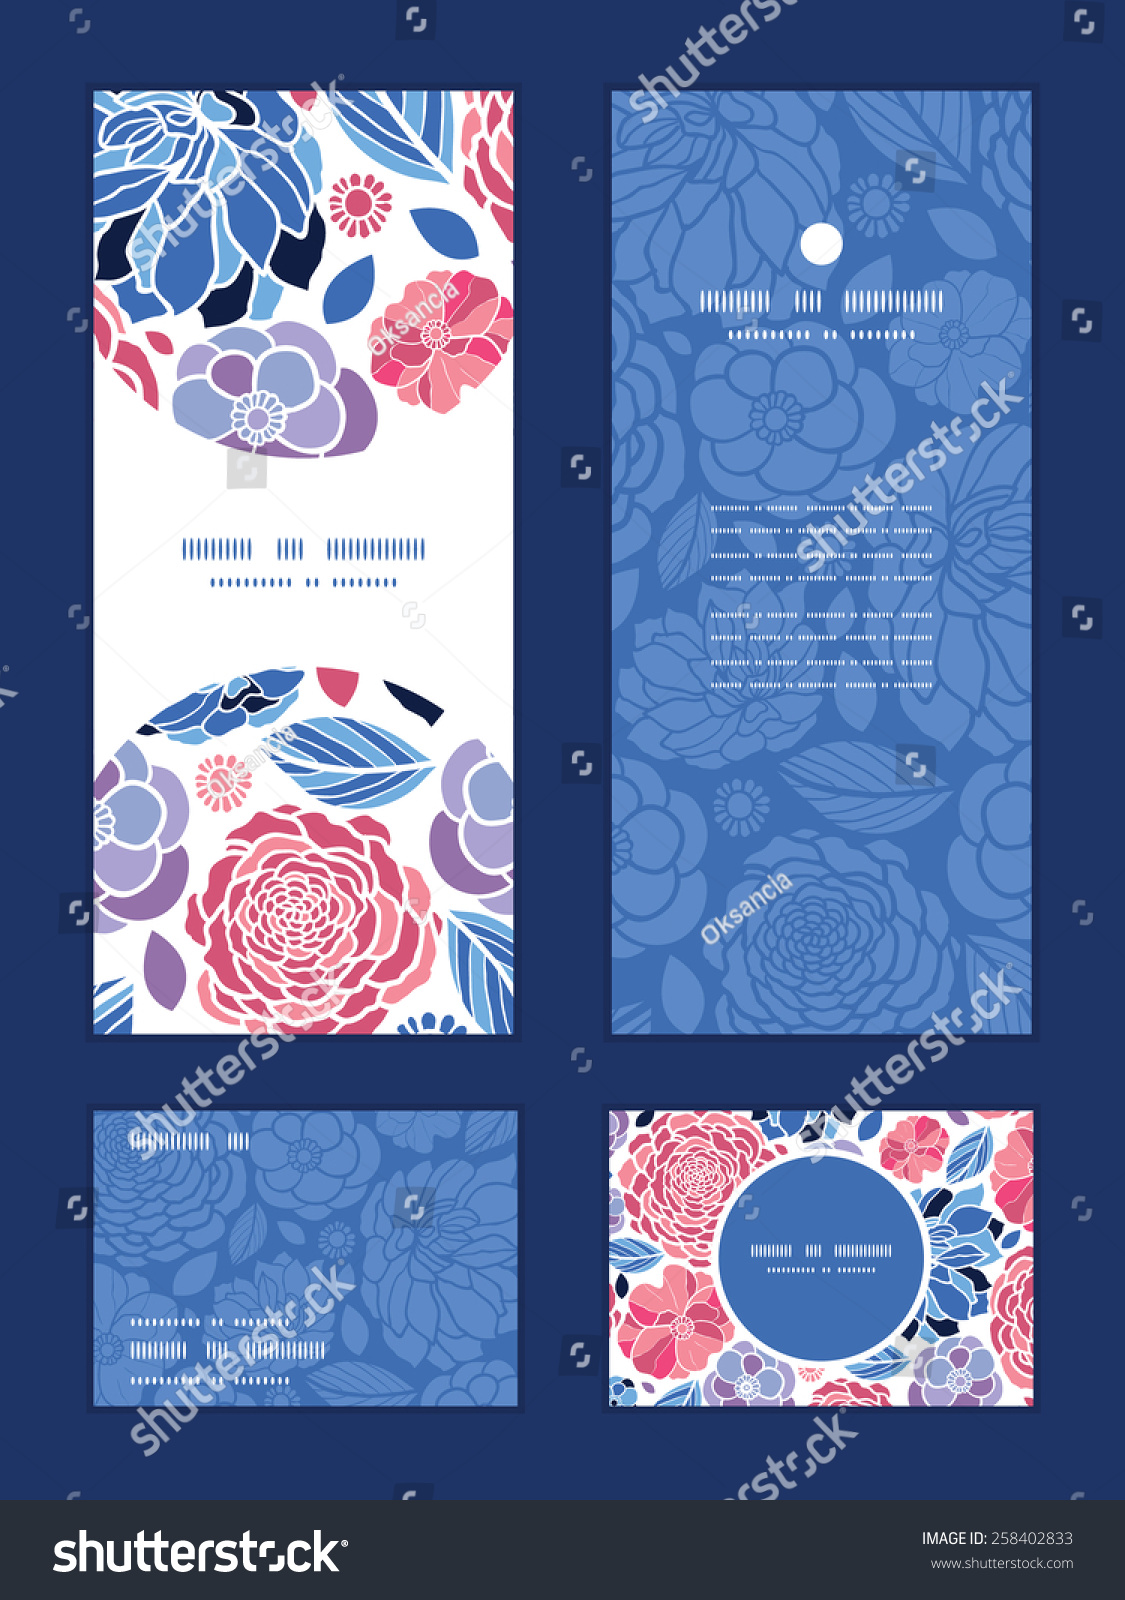 Vector Mosaic Flowers Vertical Frame Pattern Invitation Greeting